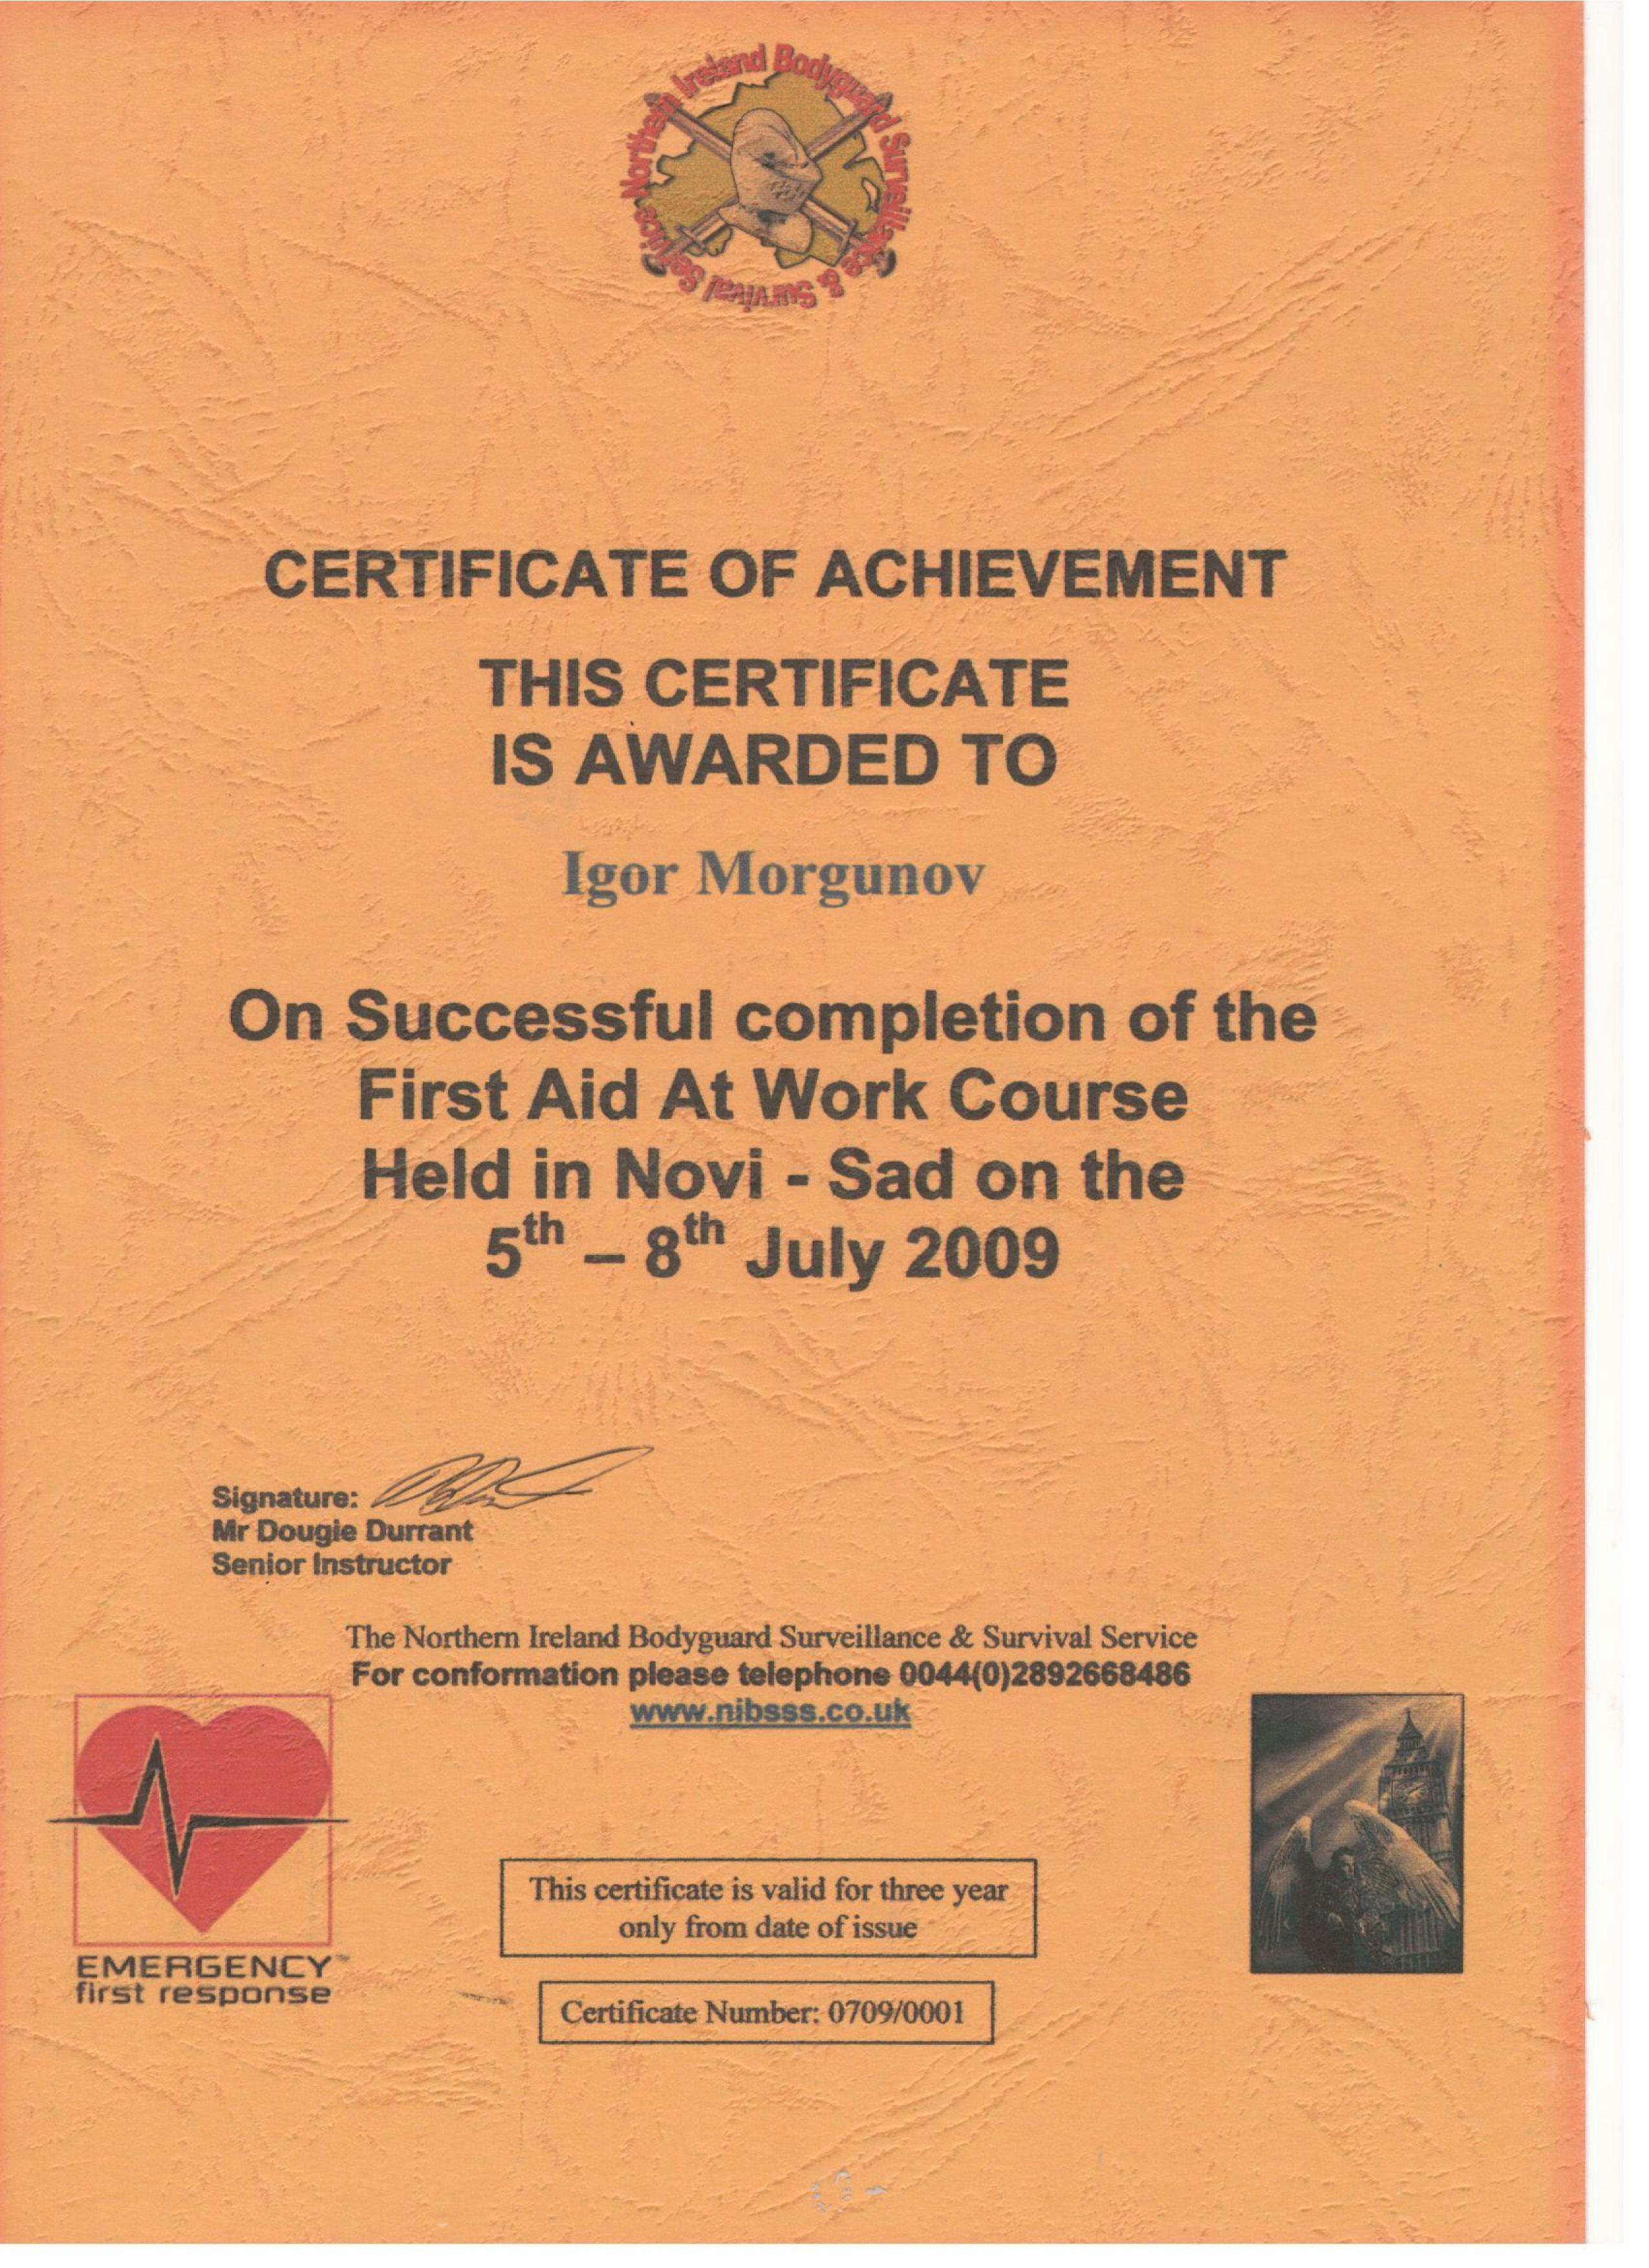 Certificate of Achievement Igor Morgunov 5 - 8 July 2009